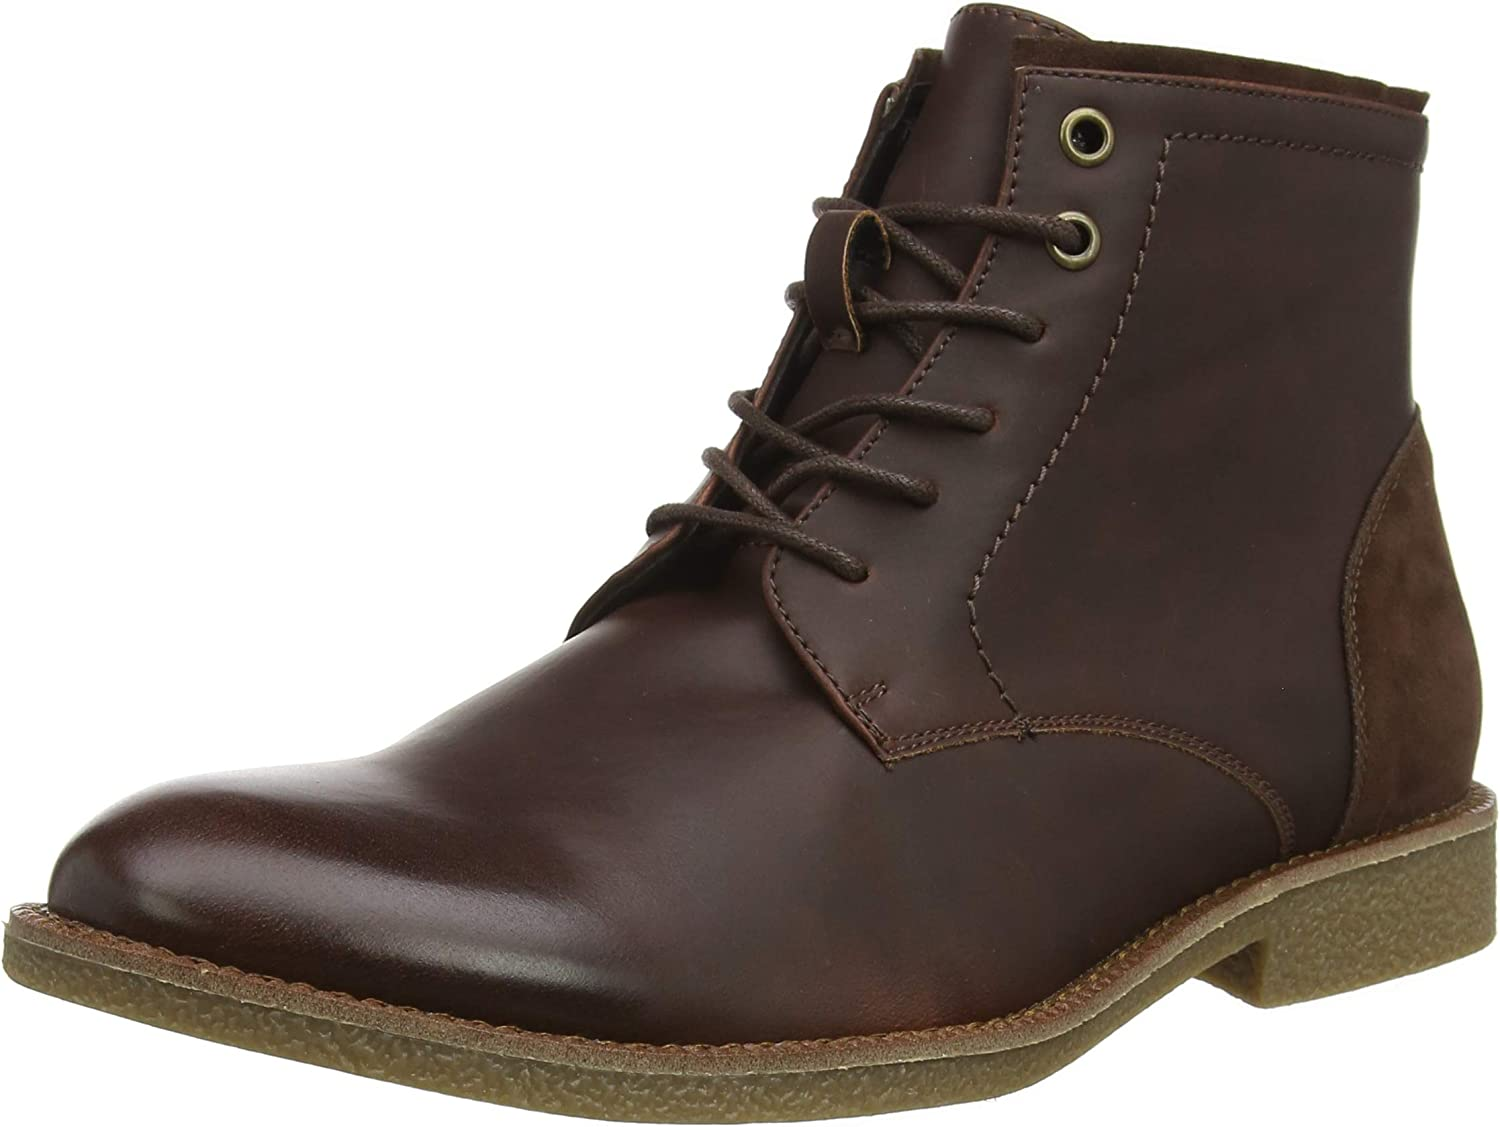 TALLA 44 EU. New Look Arizona Zip, Botas Clasicas para Hombre